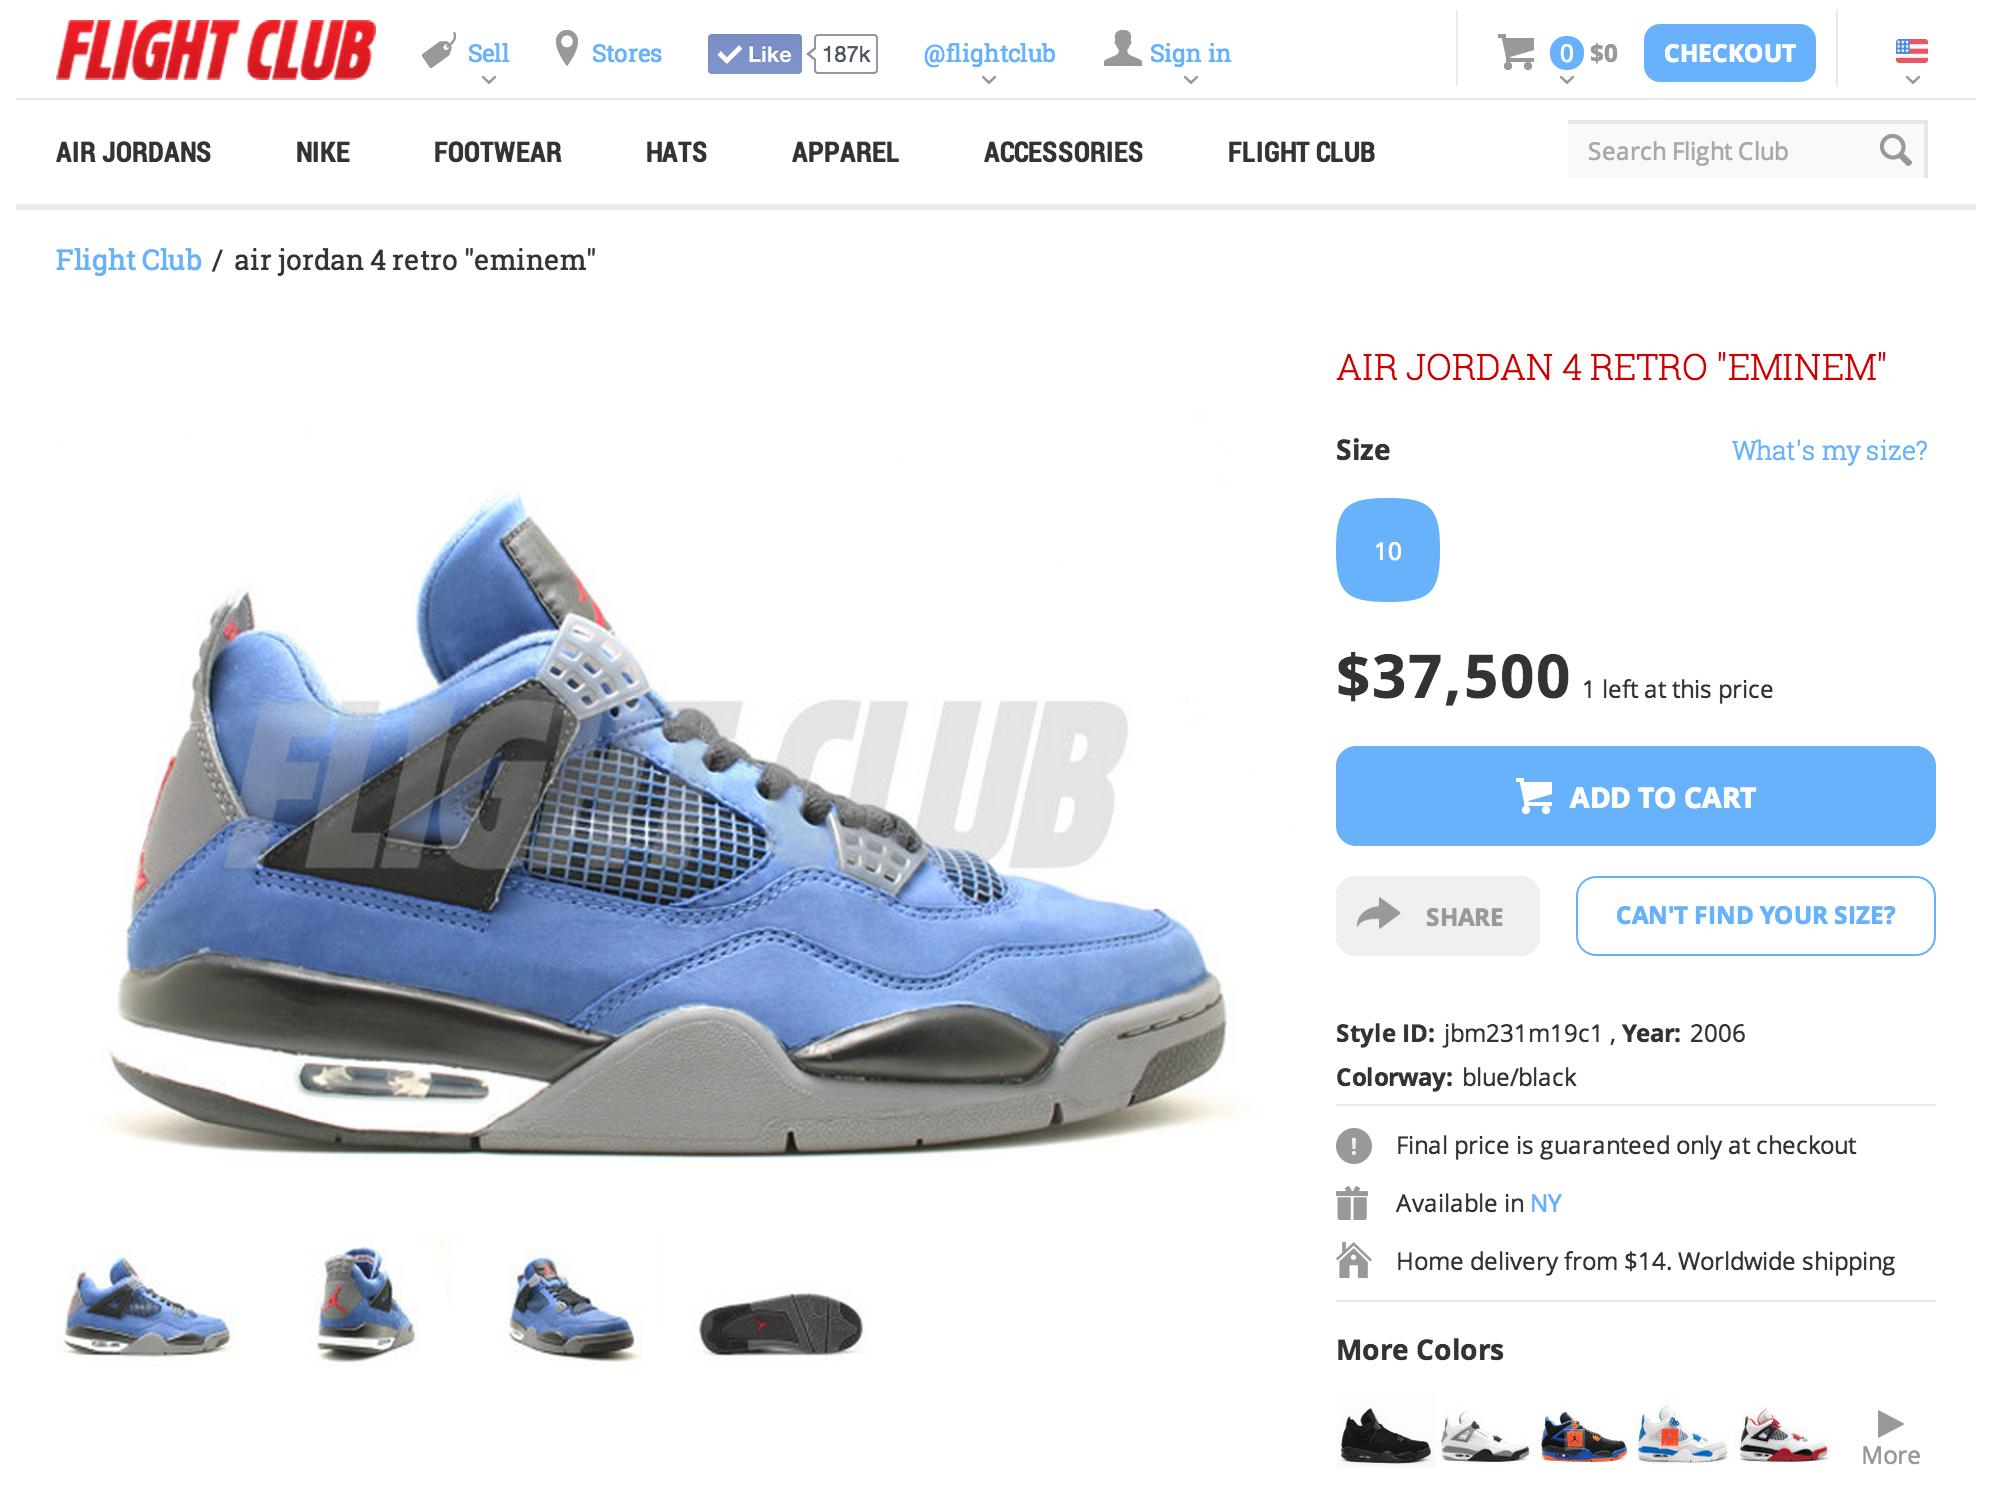 air jordan 4 eminem flight club